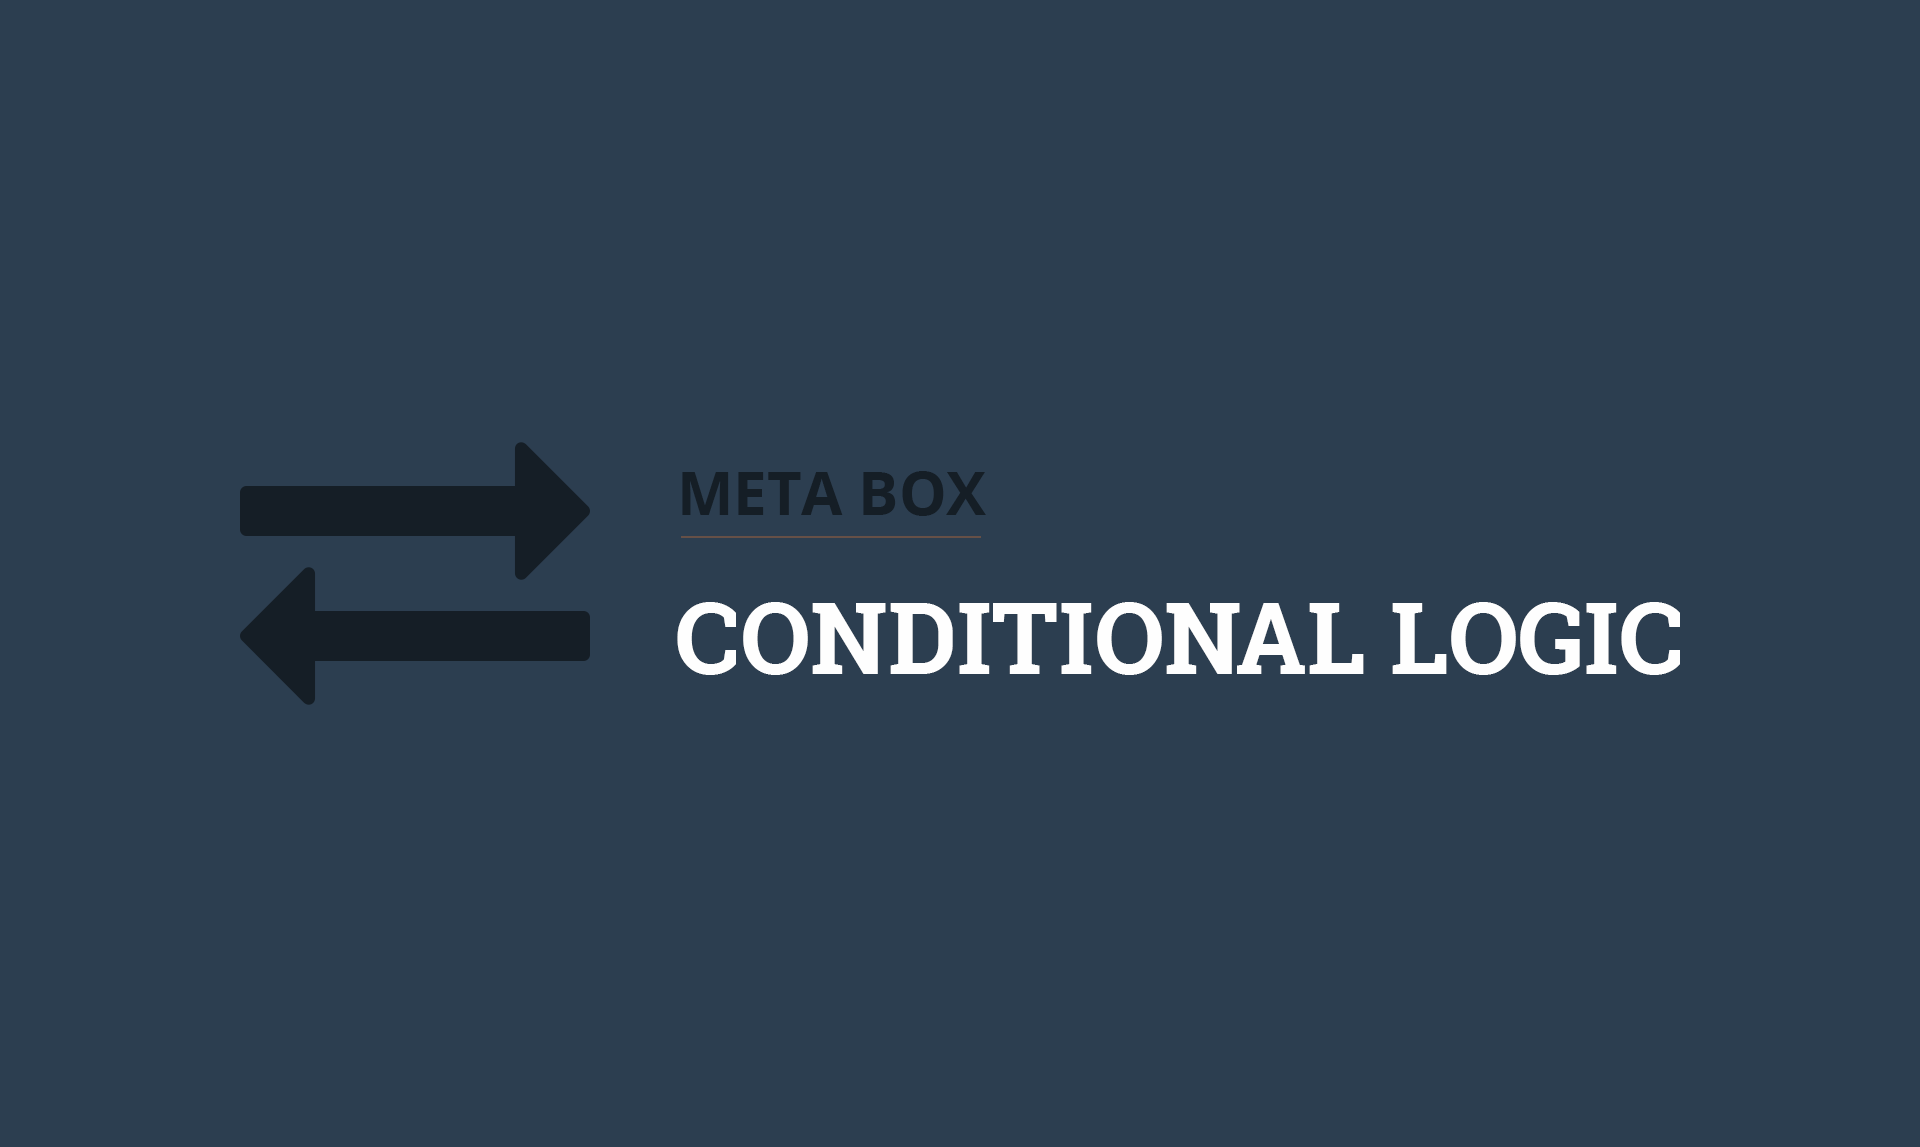 Meta Box Conditional Logic